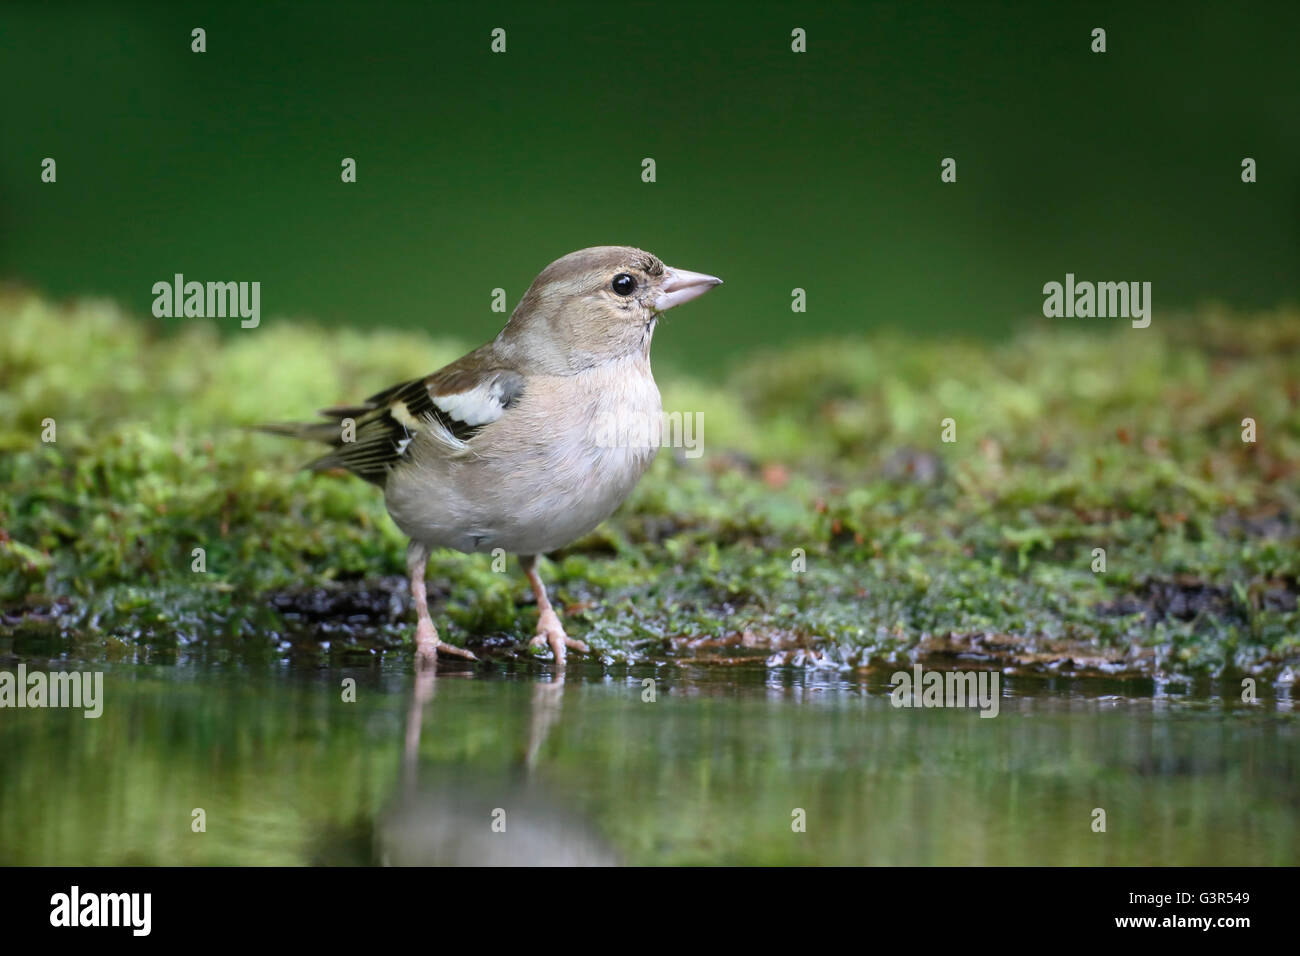 Chaffinch, Fringilla coelebs, single female by water, Hungary, May 2016 - Stock Image